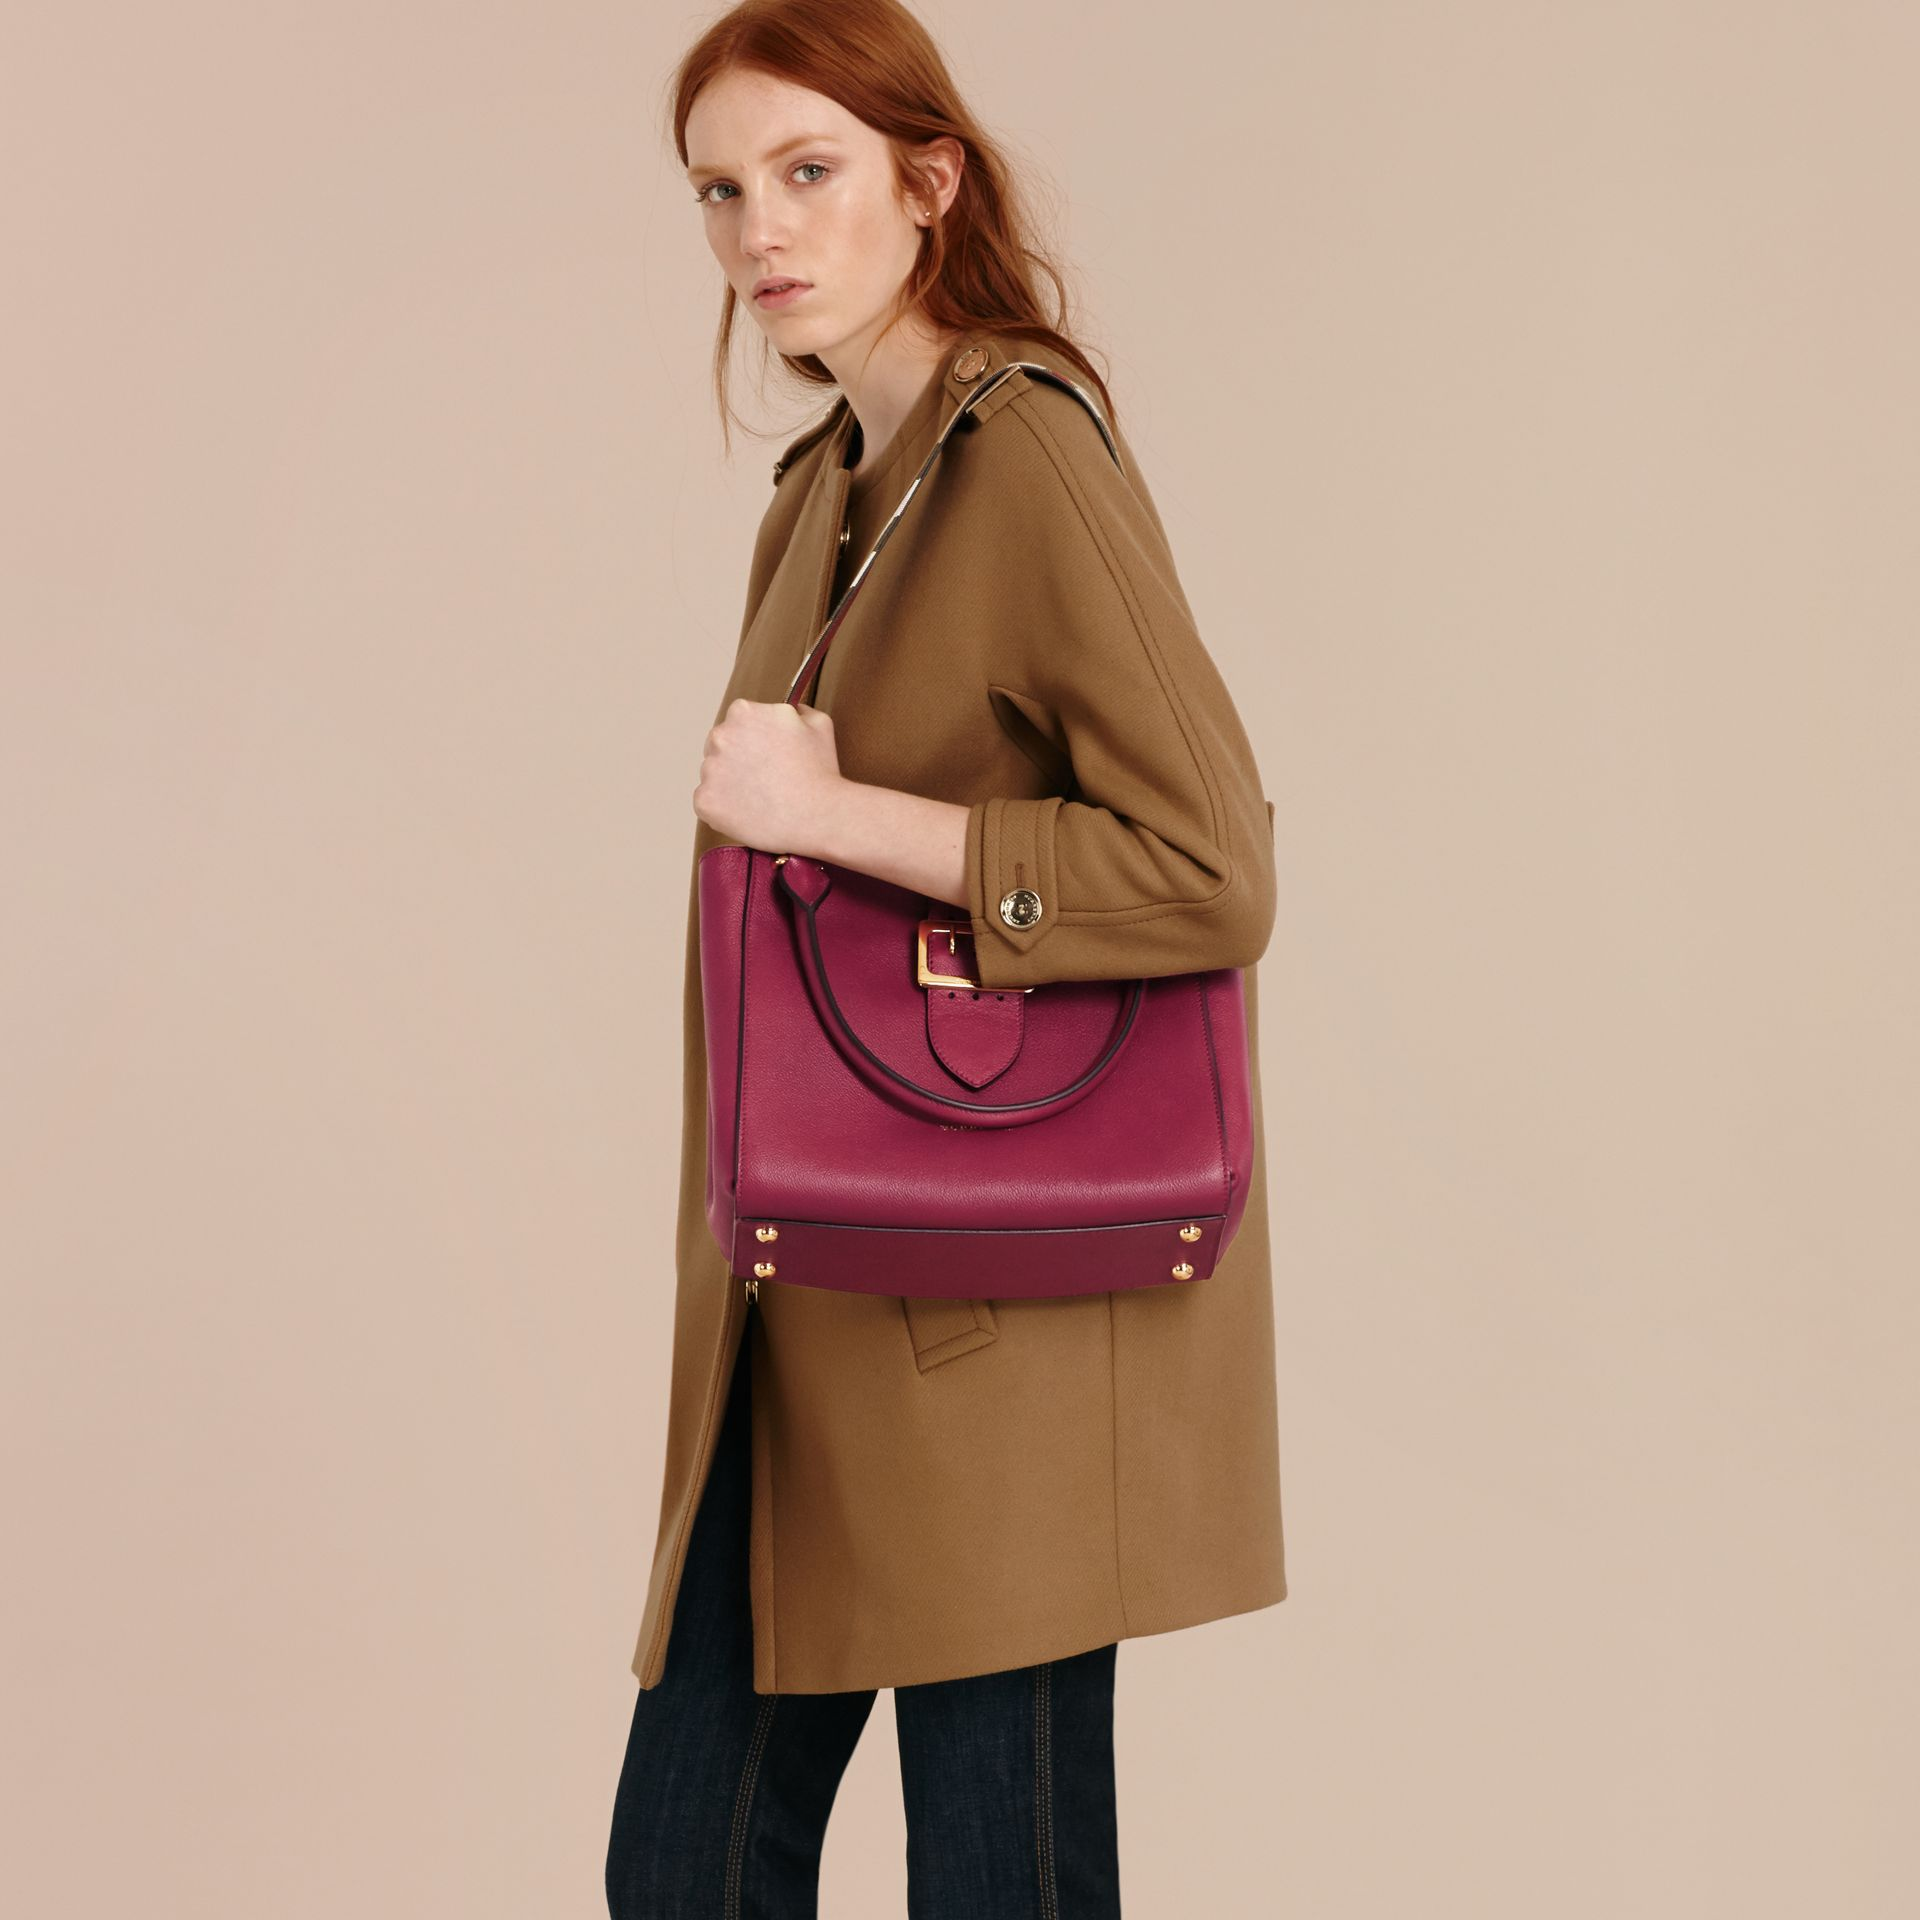 Dark plum The Medium Buckle Tote in Grainy Leather Dark Plum - gallery image 3